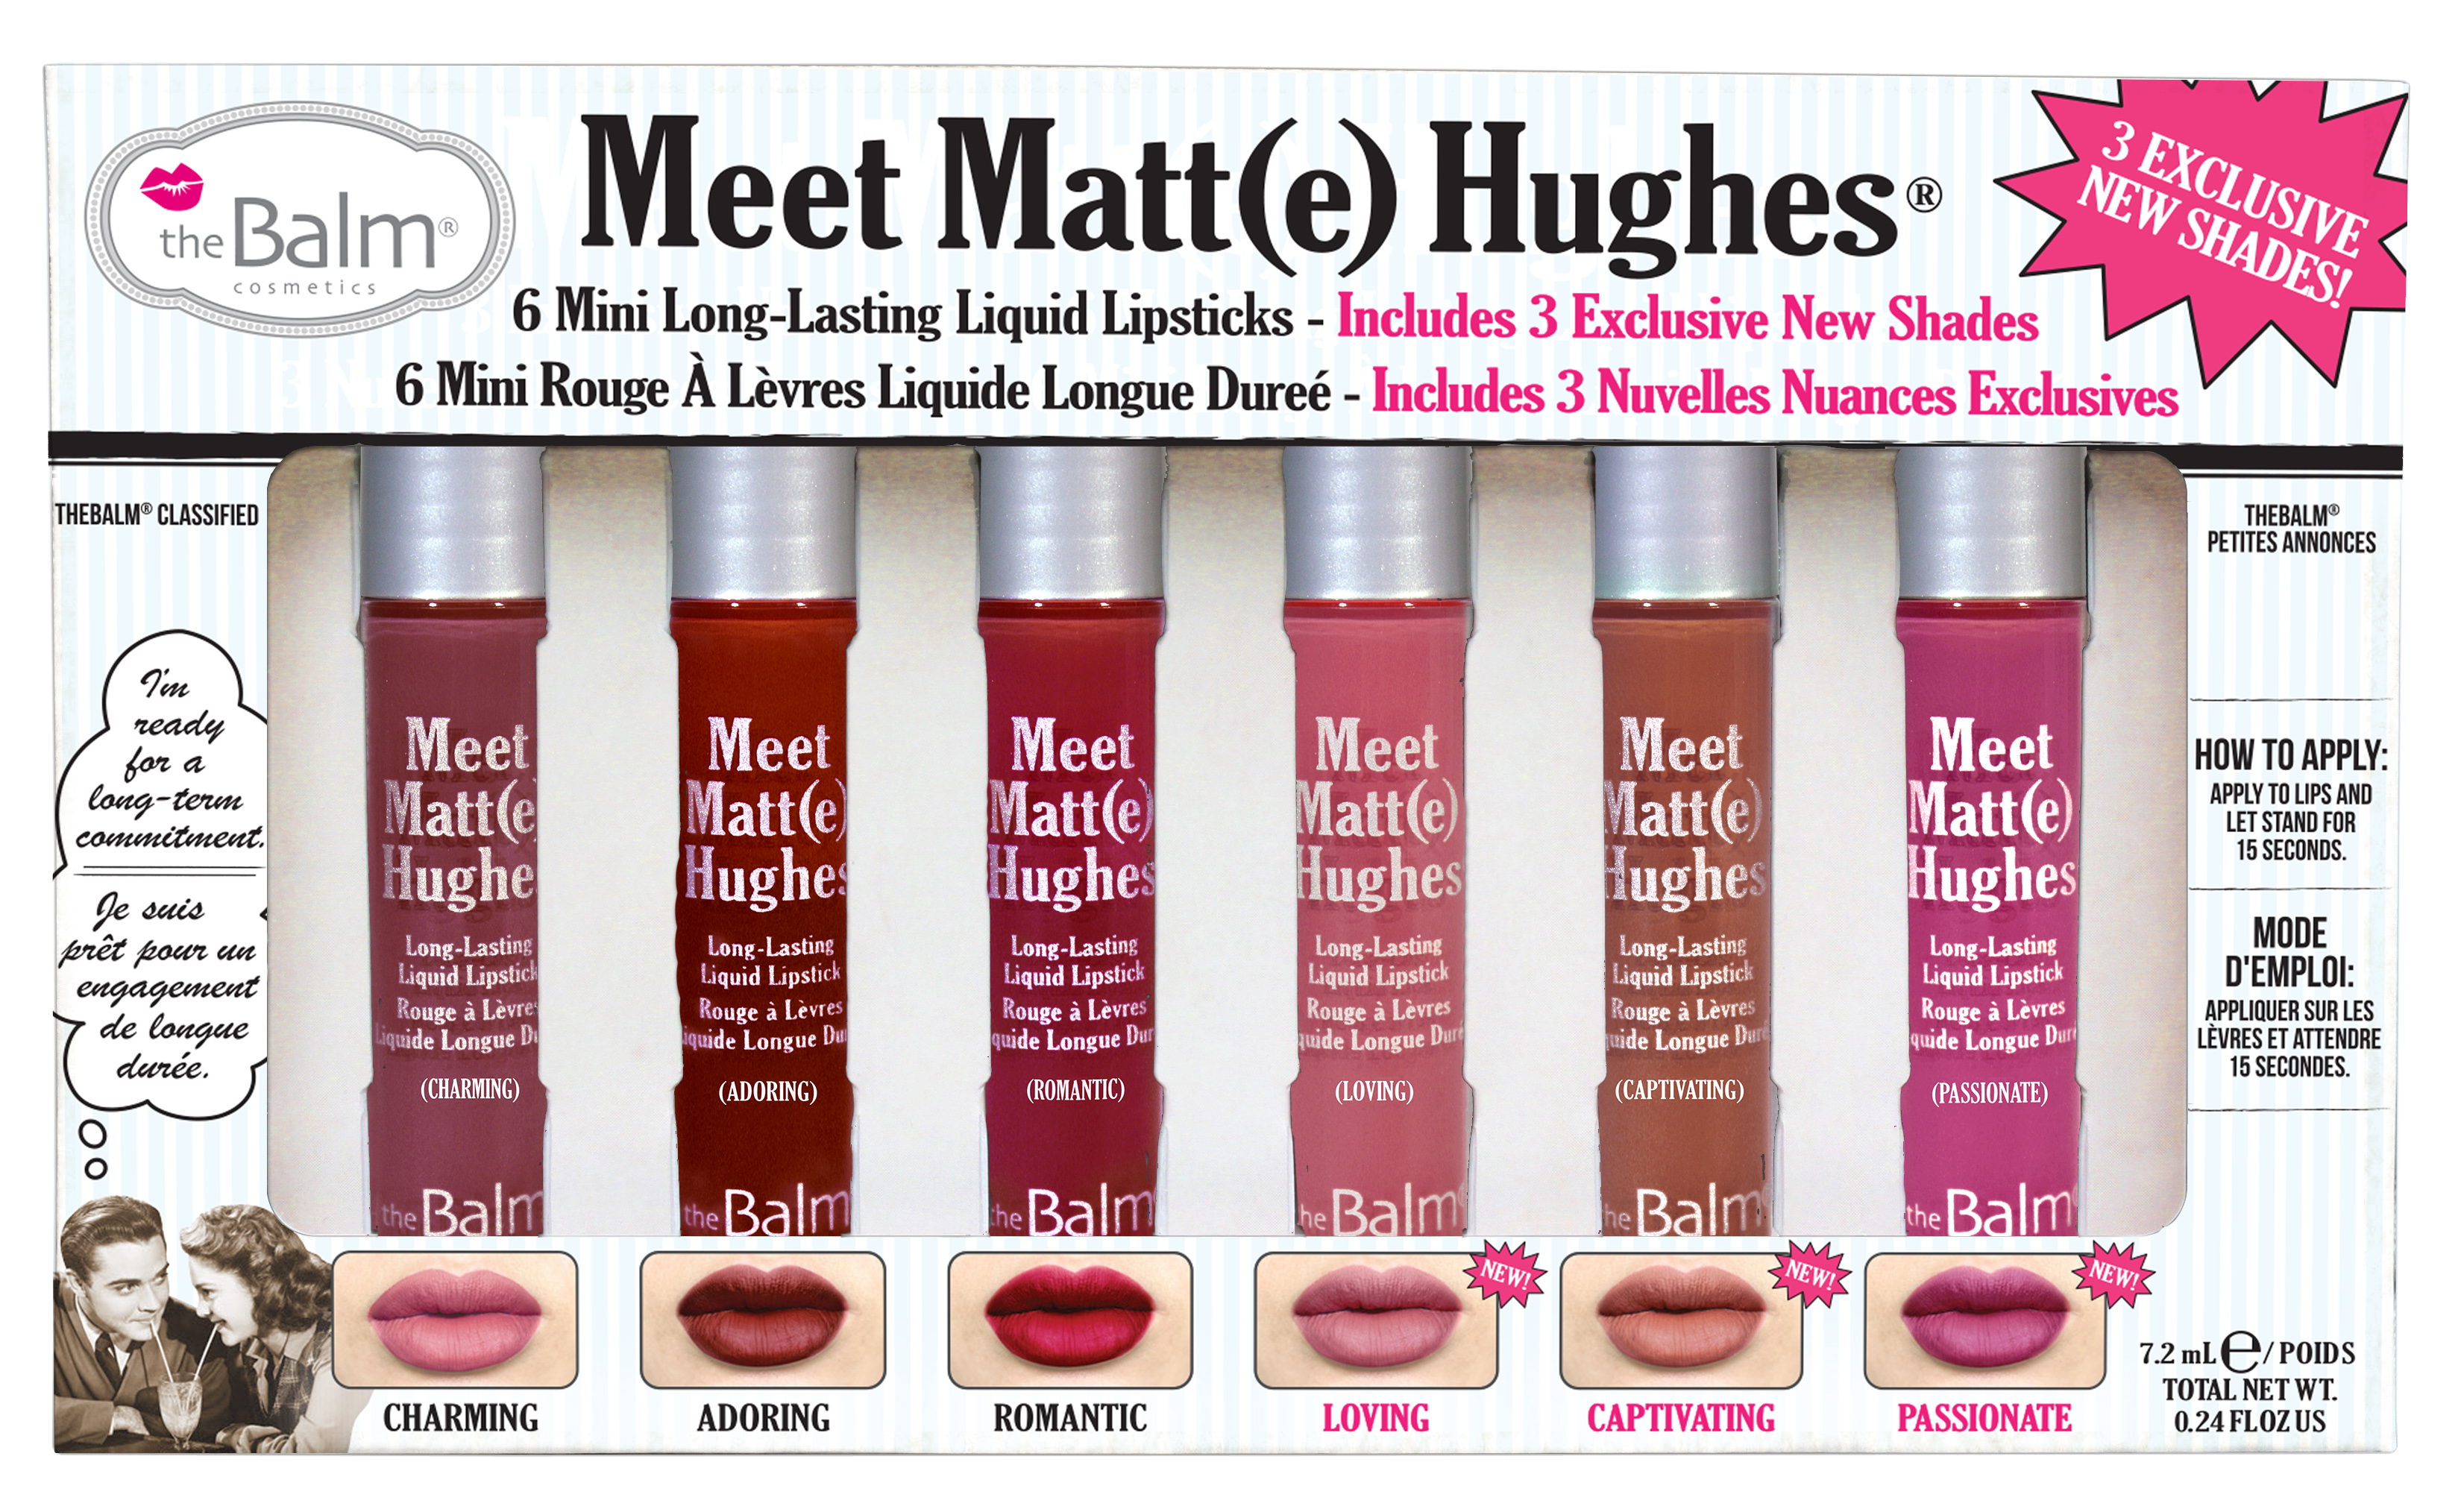 Meet Matte Hughes Vol 3 Meet Matte Hughes Liquid Lipsticks Vol.3